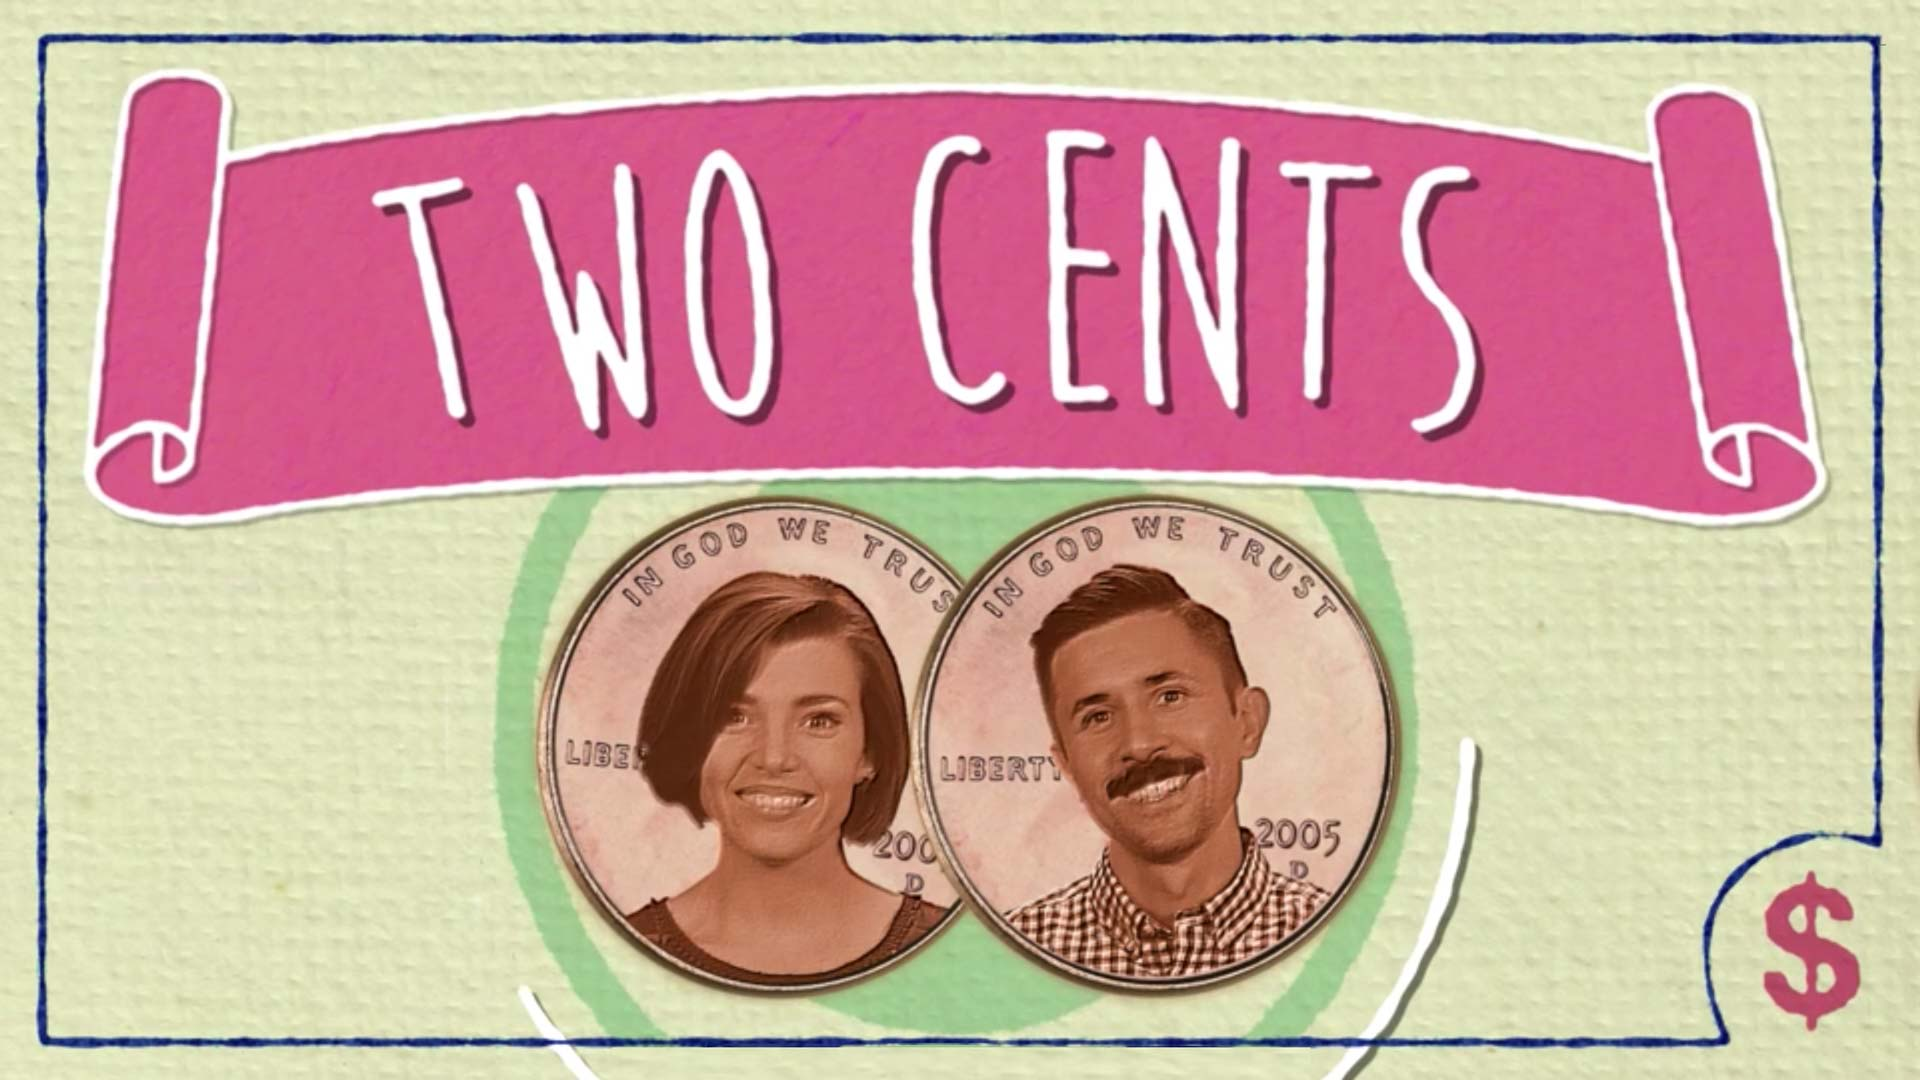 PBS Digital Studios and the producers of It's Okay to Be Smart bring you TWO CENTS, a new weekly series about personal finance for millennials and Gen Z.